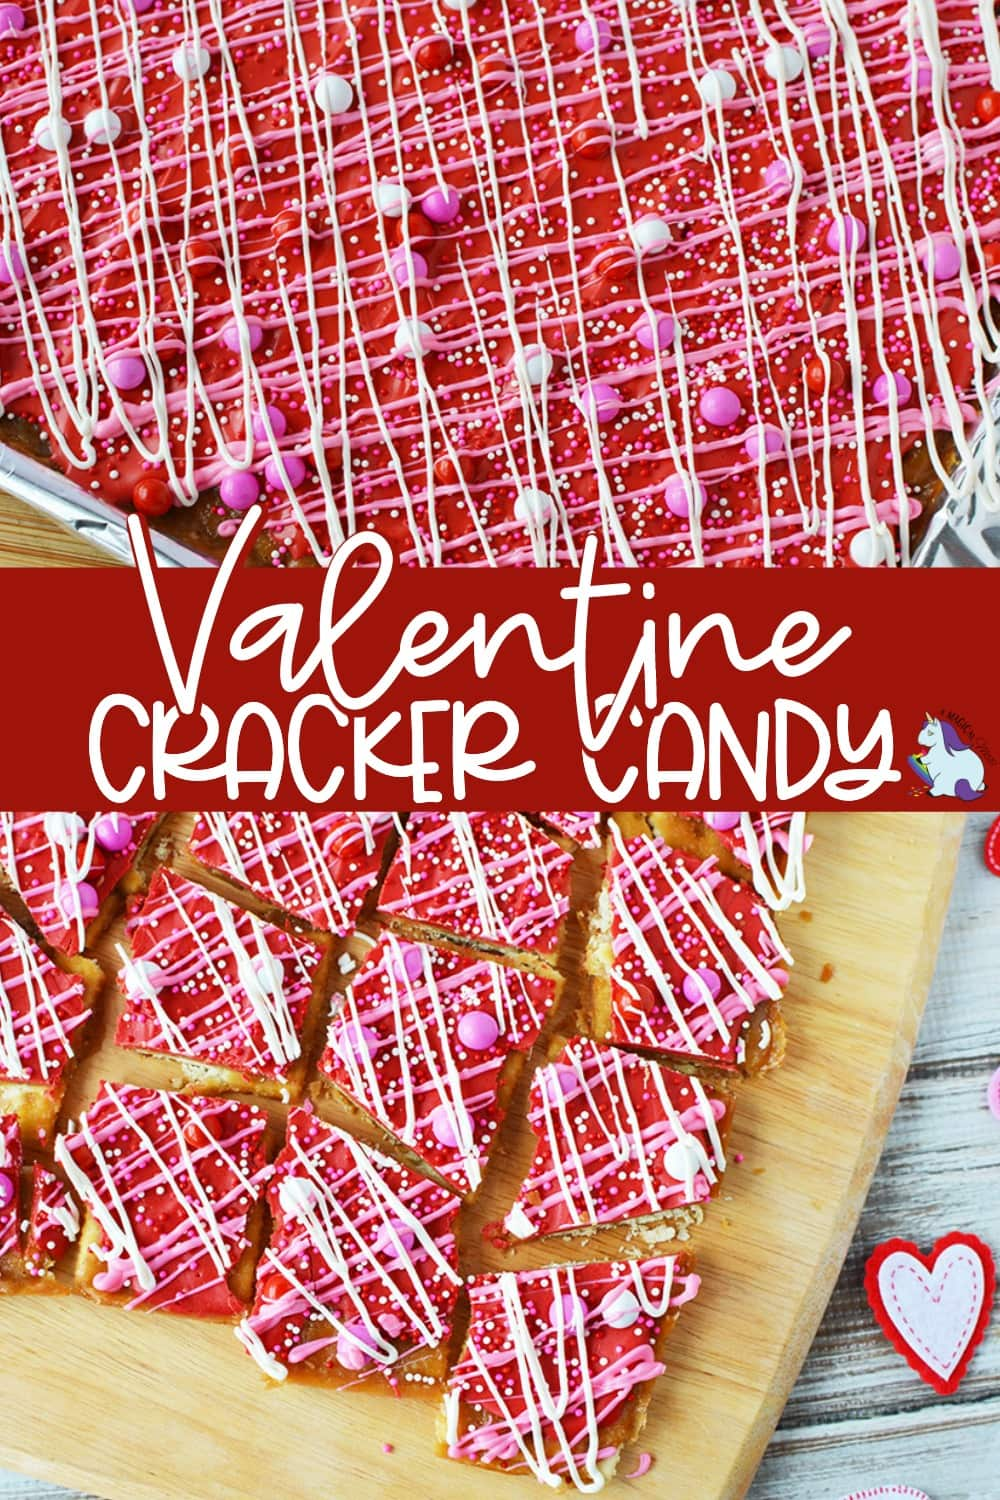 Cracker candy with Valentine's day colors